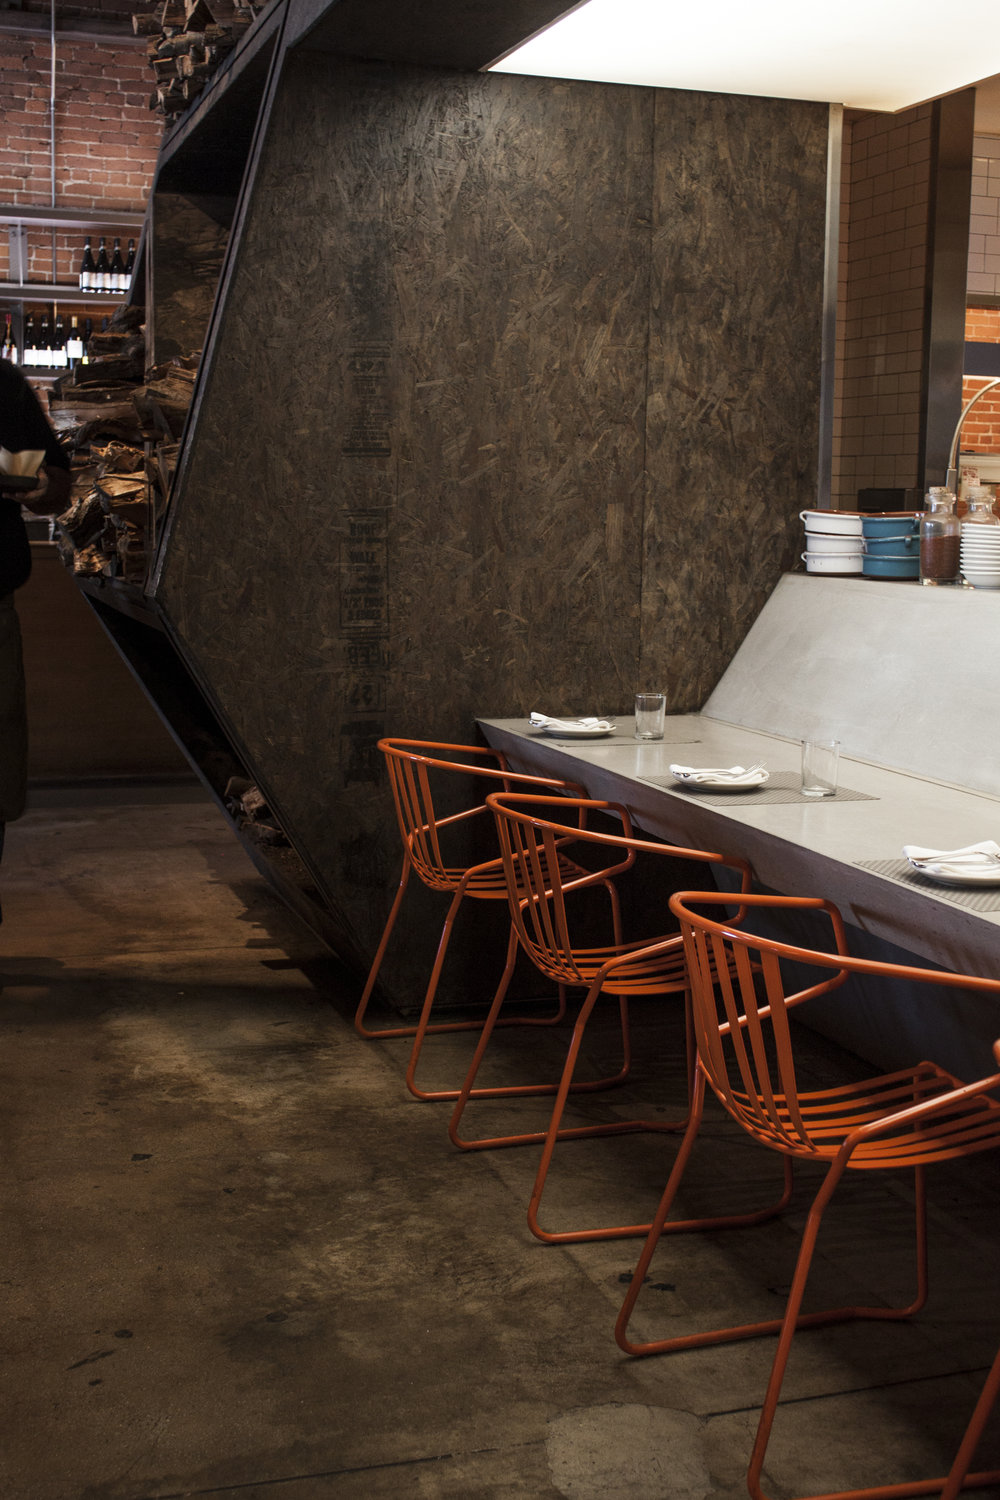 Odys Penelope located in Mid City Los Angeles, is one of the coolest designed restaurants in LA. Odys + Penelope.